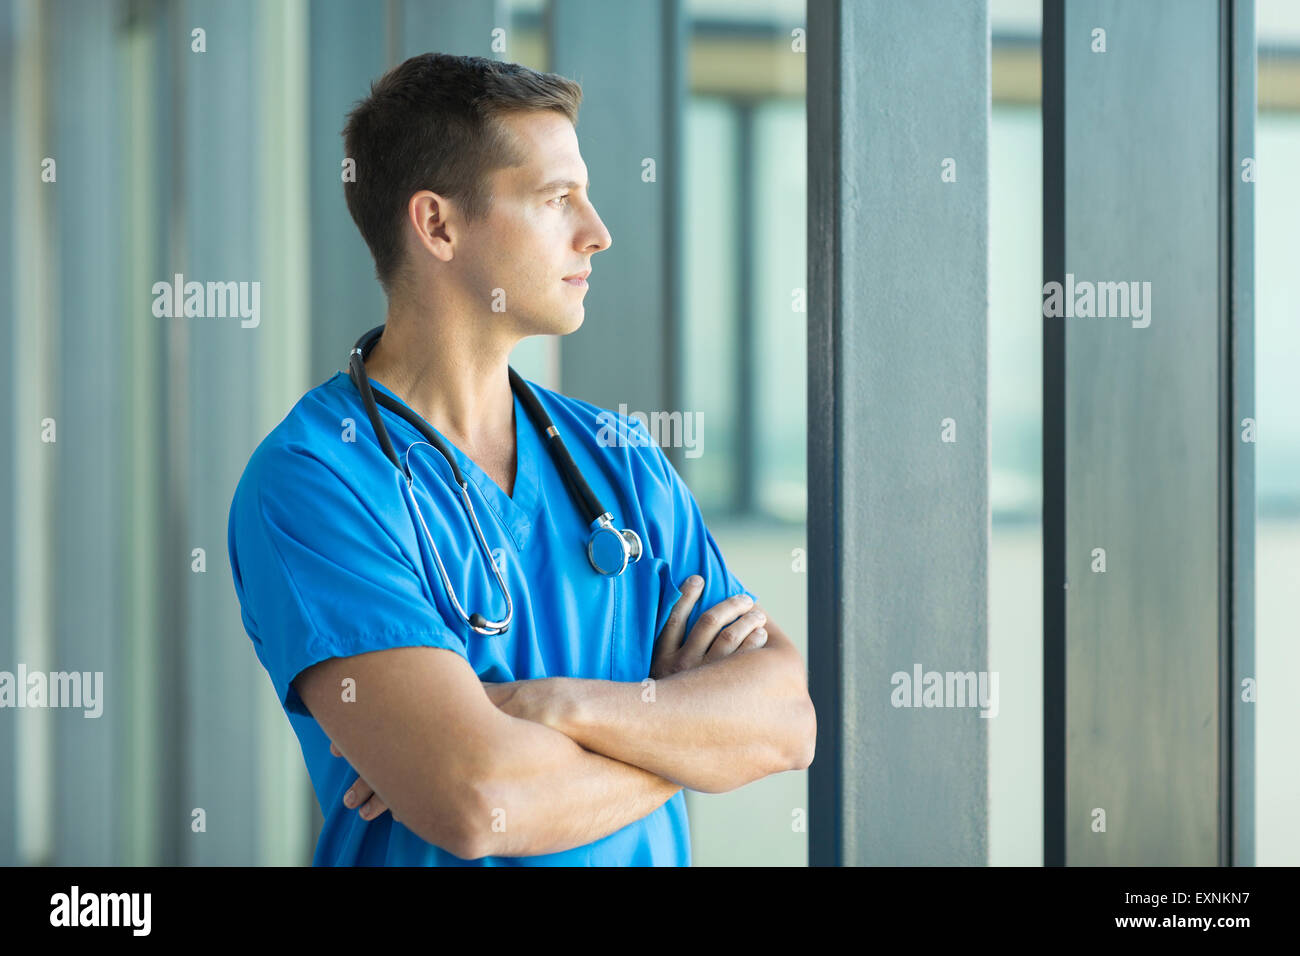 thoughtful doctor looking through office window - Stock Image